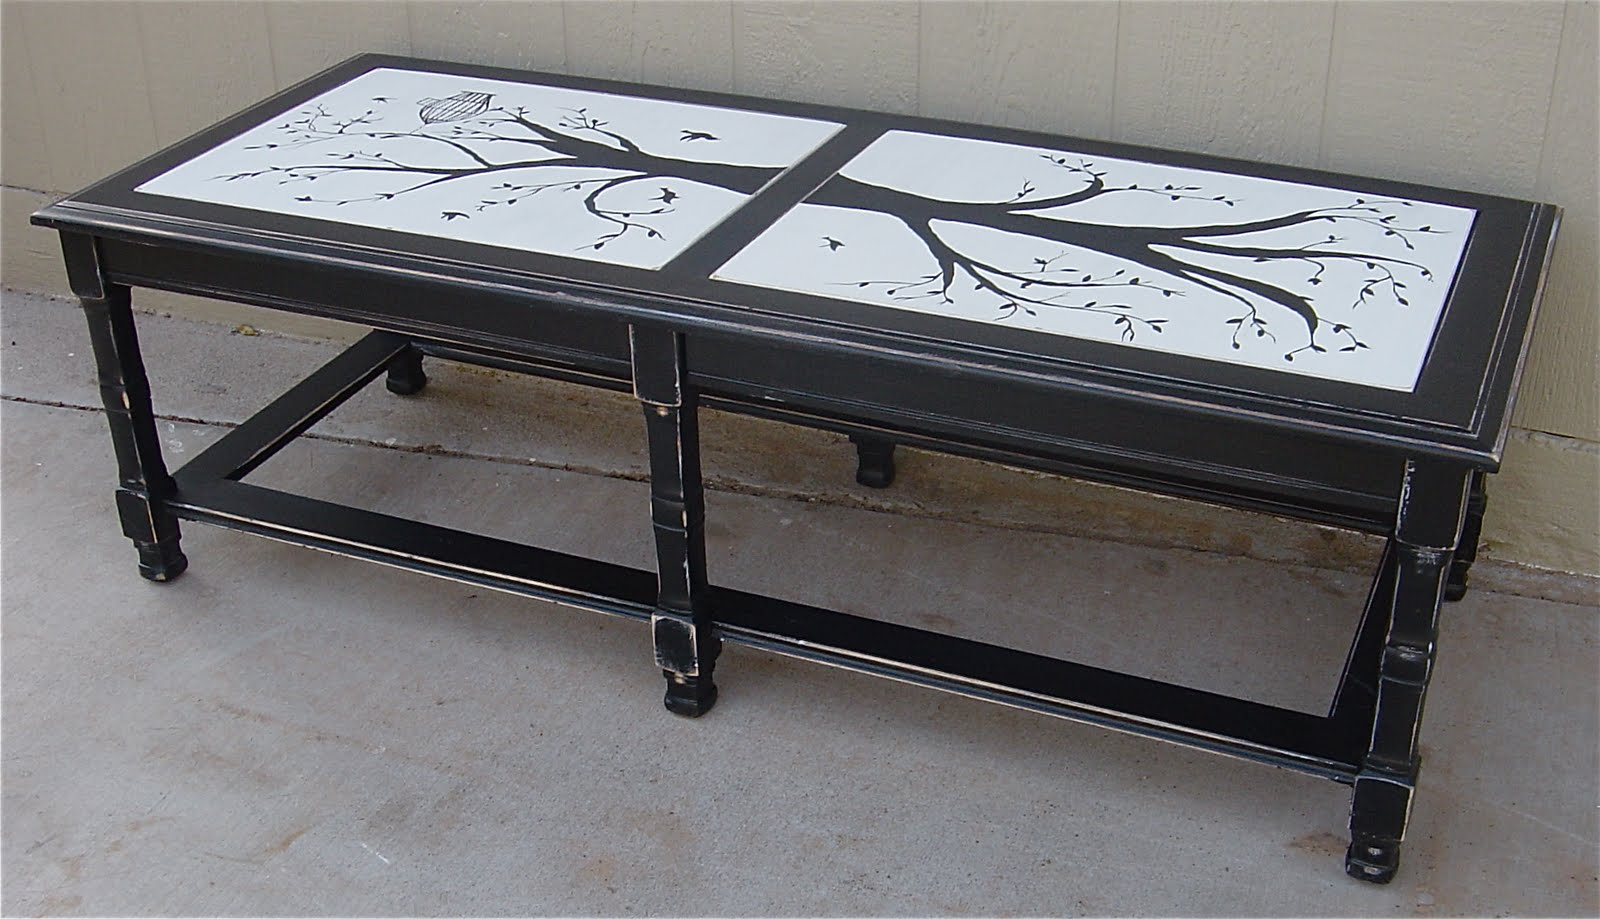 The Backyard Boutique By Five To Nine Furnishings Black Distressed Coffee Table With Mural